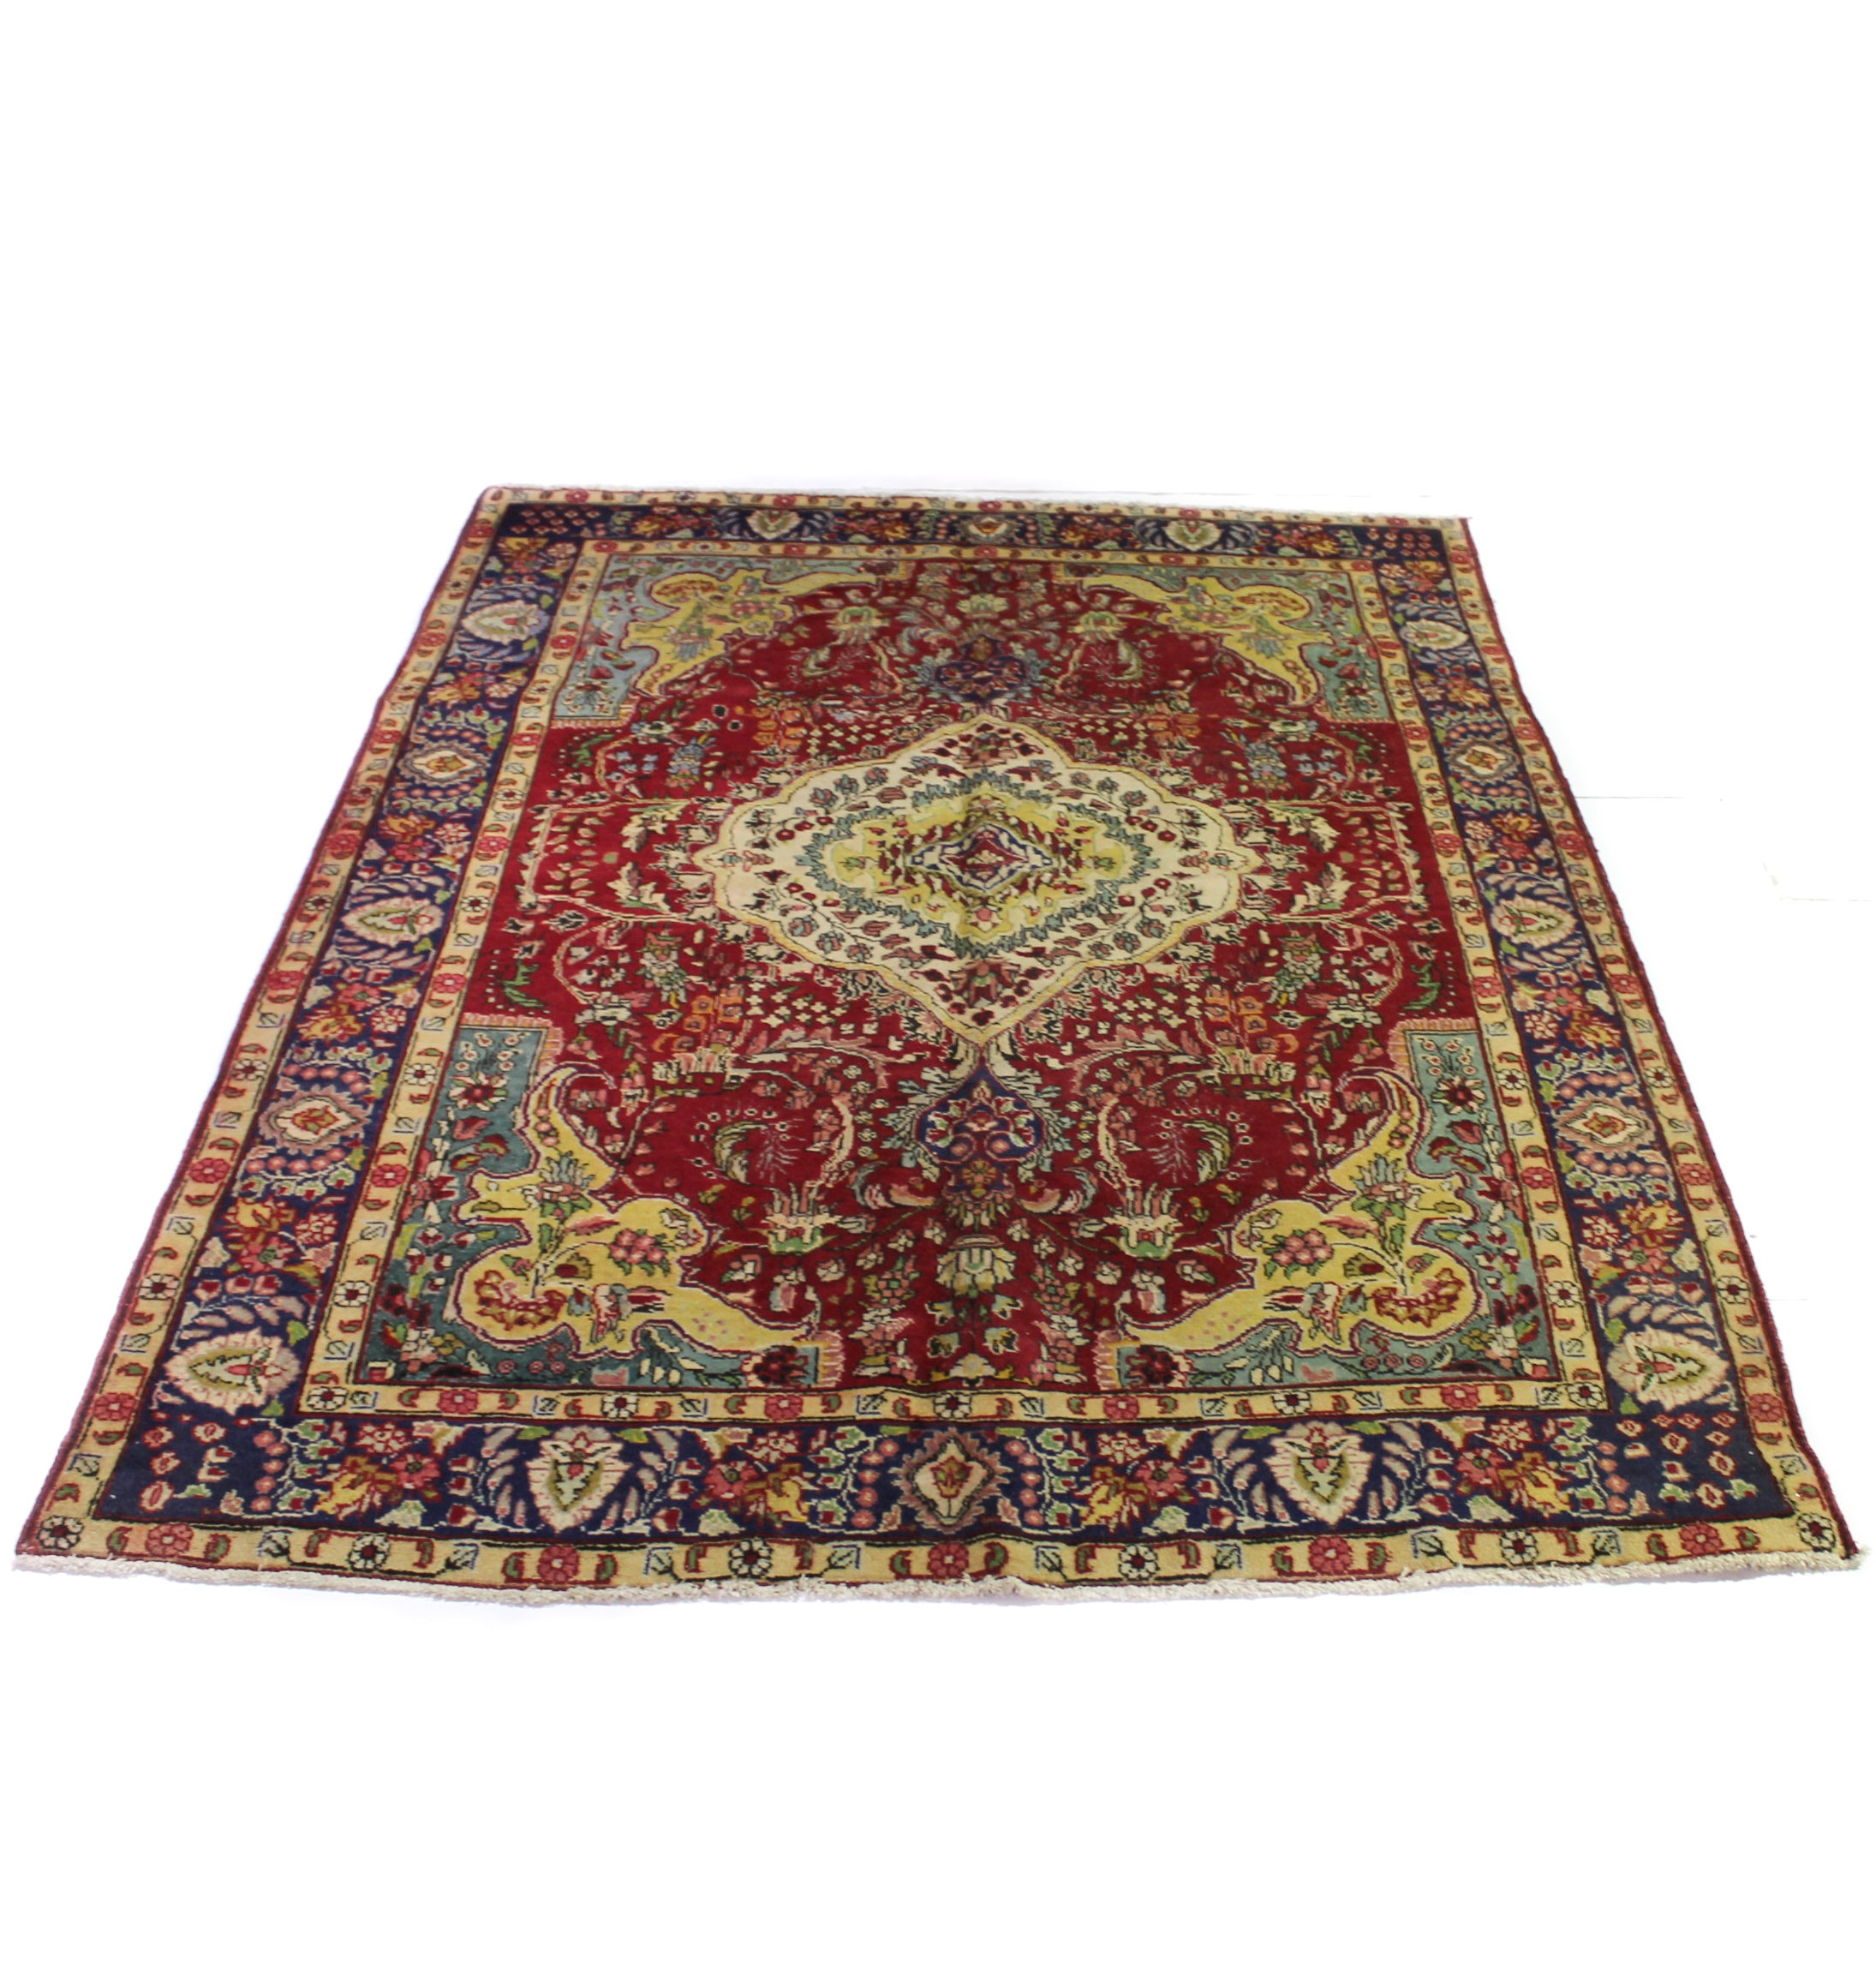 6'6 x 9'2 Hand-Knotted Persian Tabriz Rug